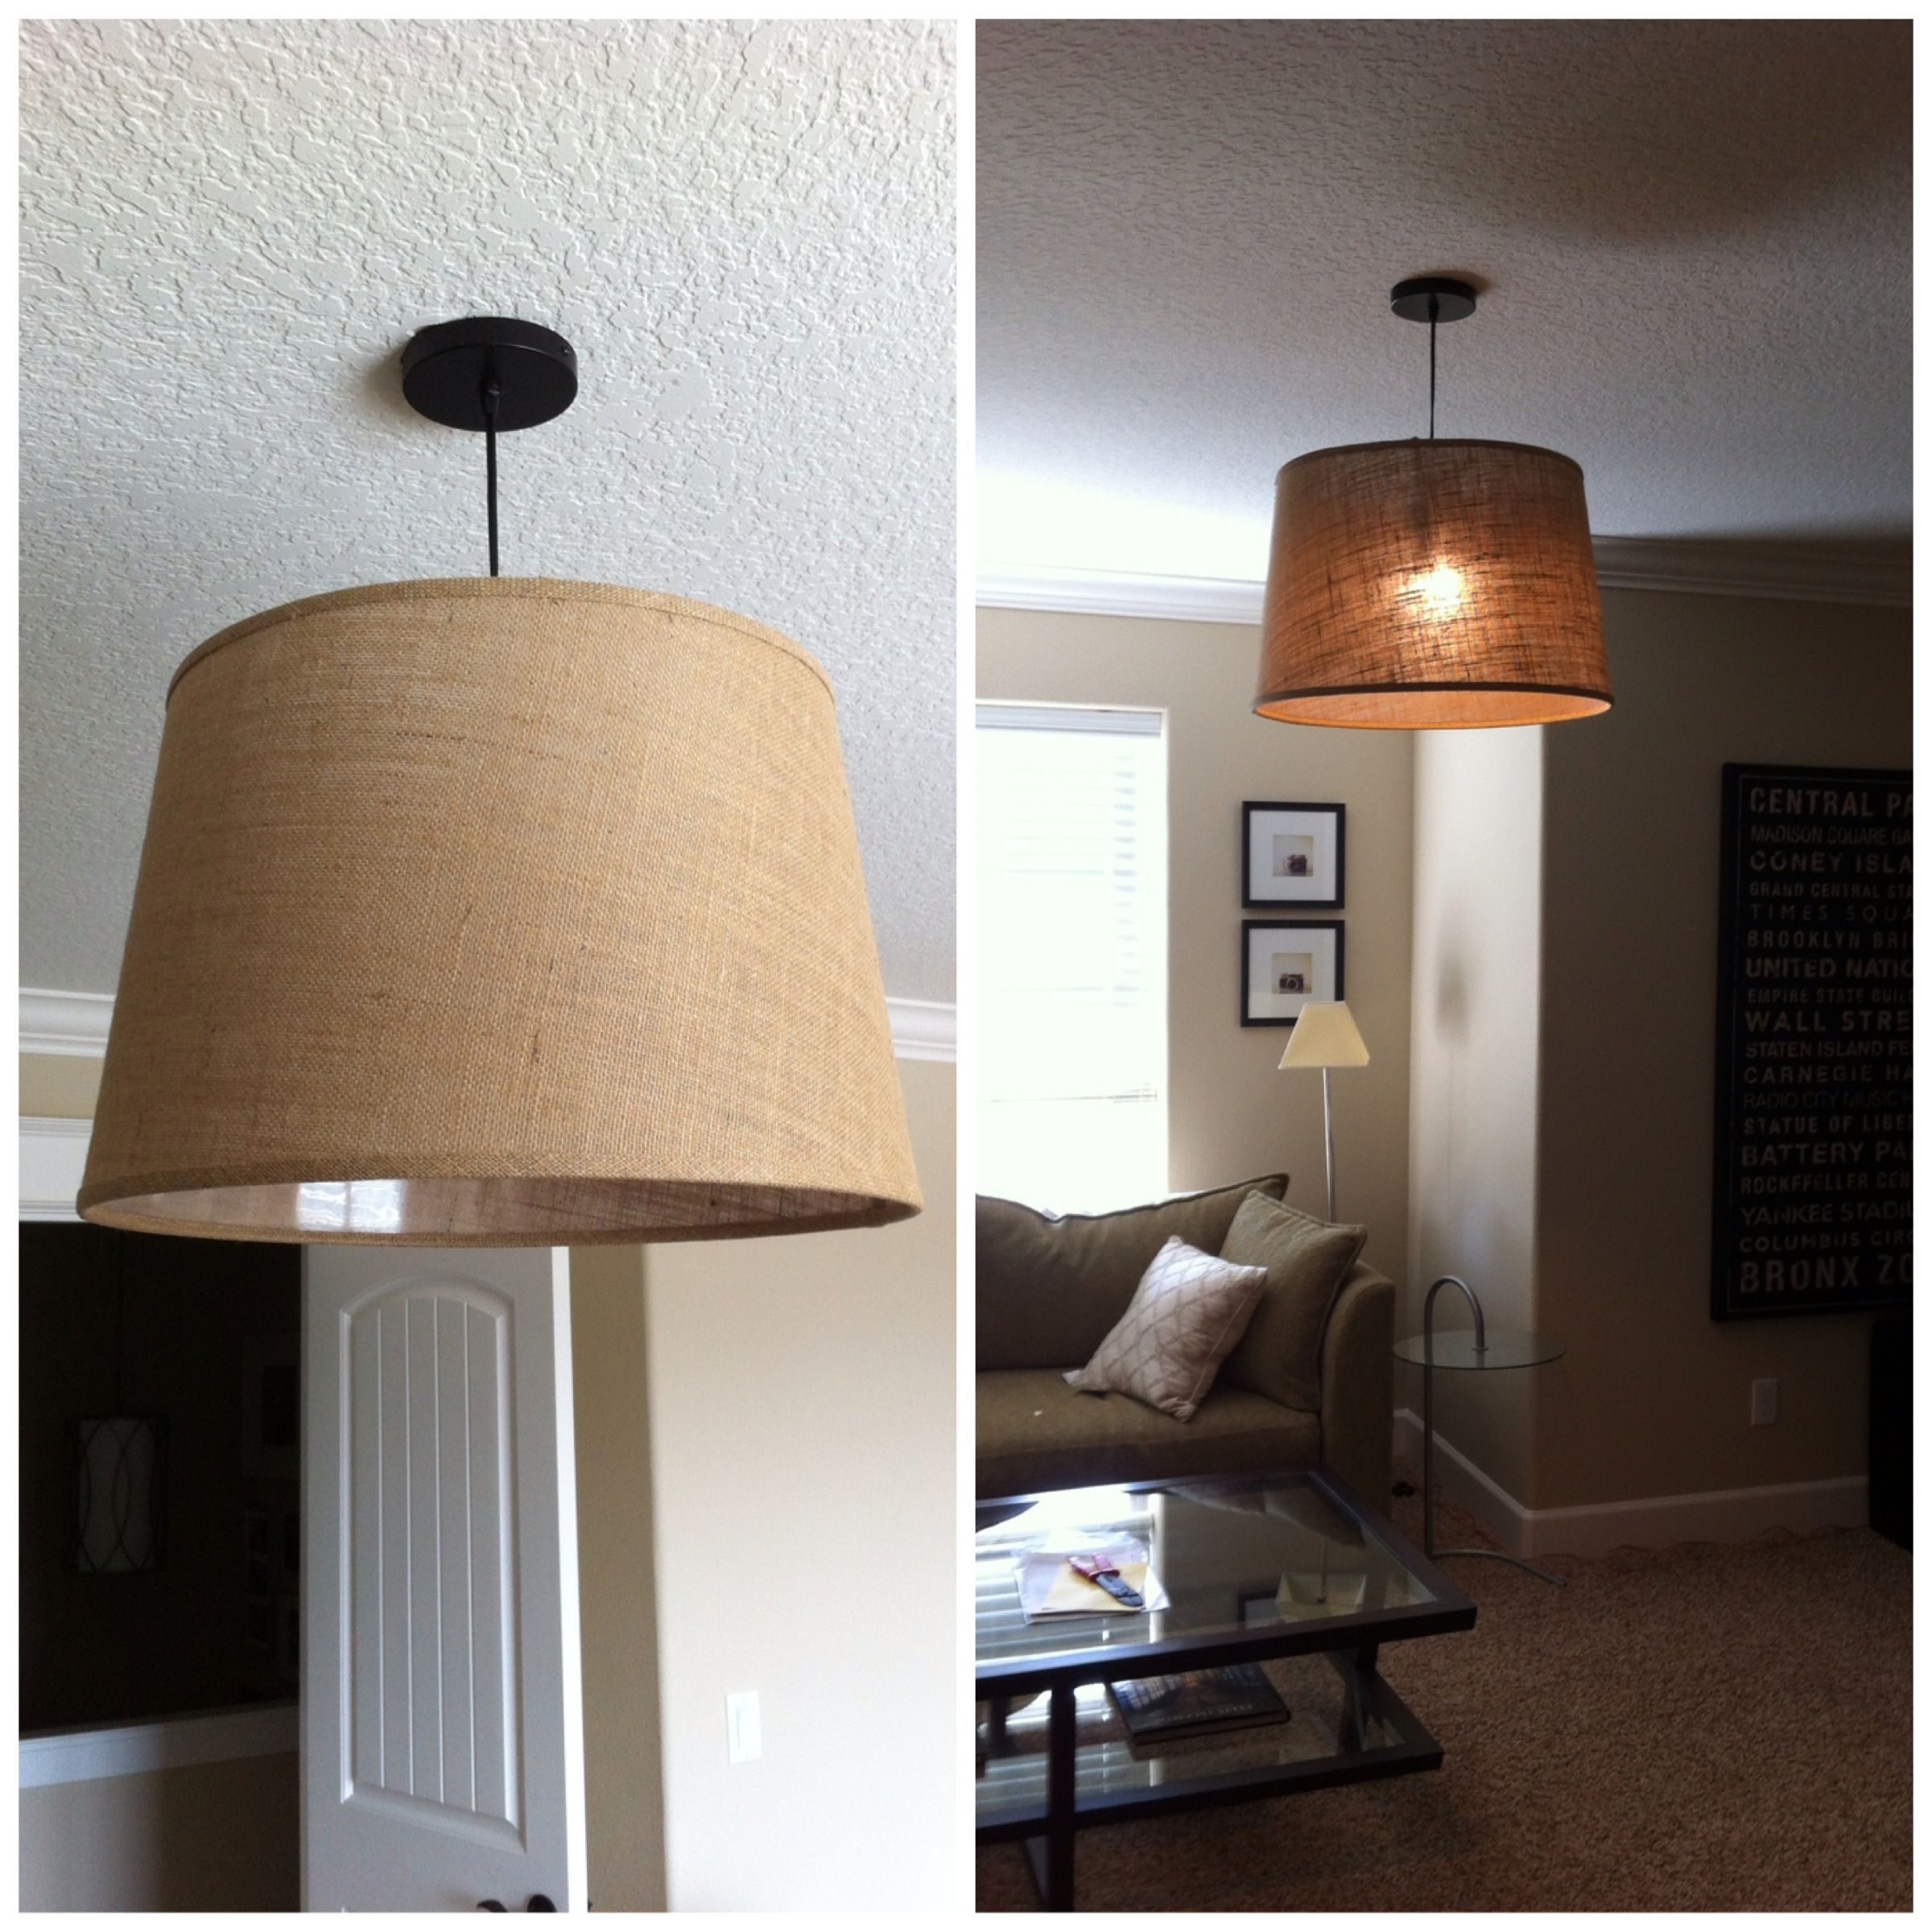 Cheapest diy pendant light weve ever bought cost plus black cheapest diy pendant light weve ever bought cost plus black electrical ceiling hardware kit 1299 natural burlap floor lamp shade large and oversized aloadofball Image collections